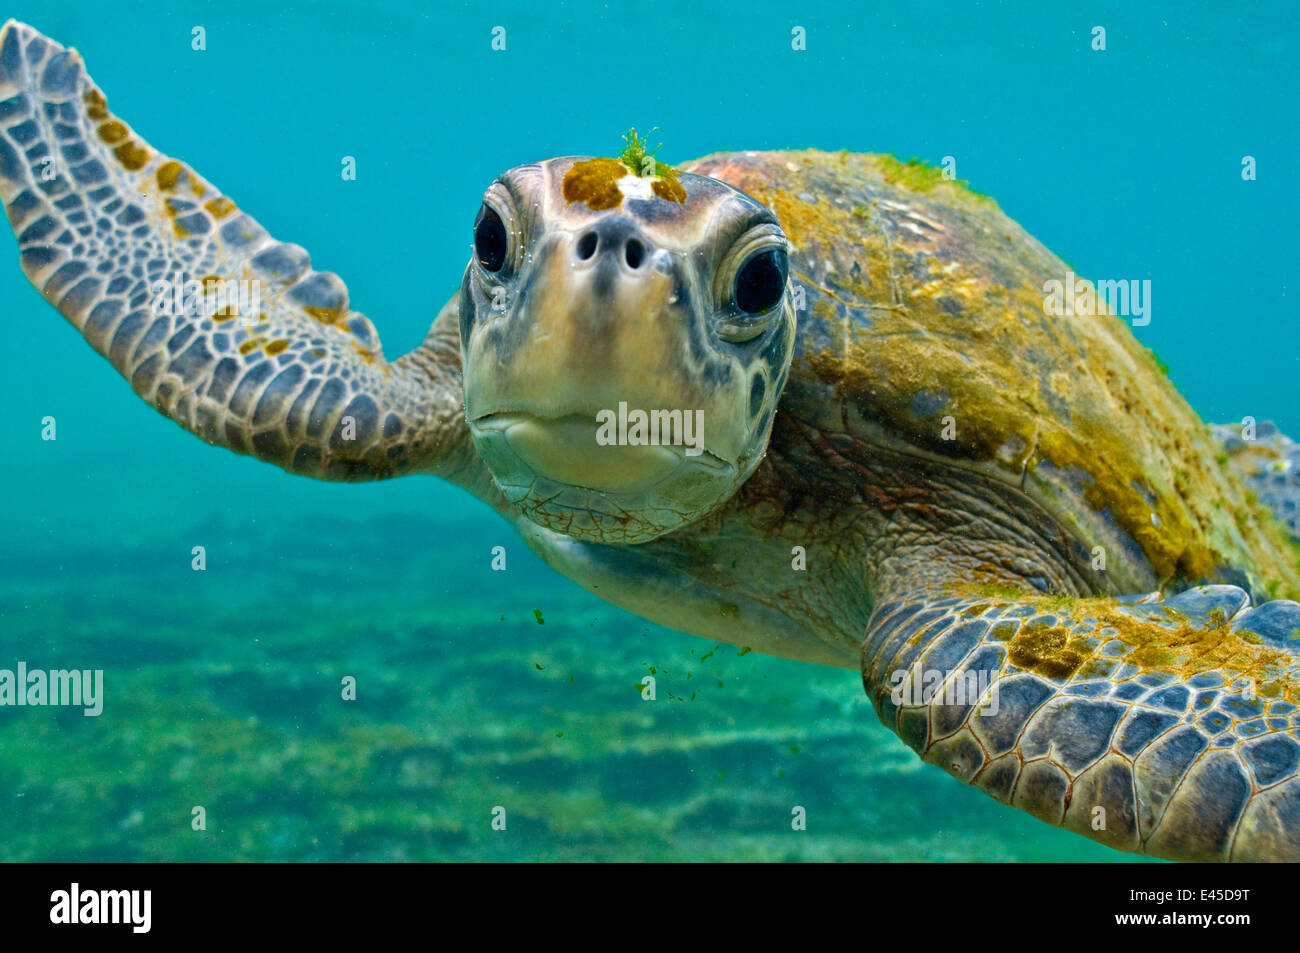 Galapagos green turtle (Chelonia mydas agassisi) underwater portrait, being inquisitive, note algae growing on head Stock Photo